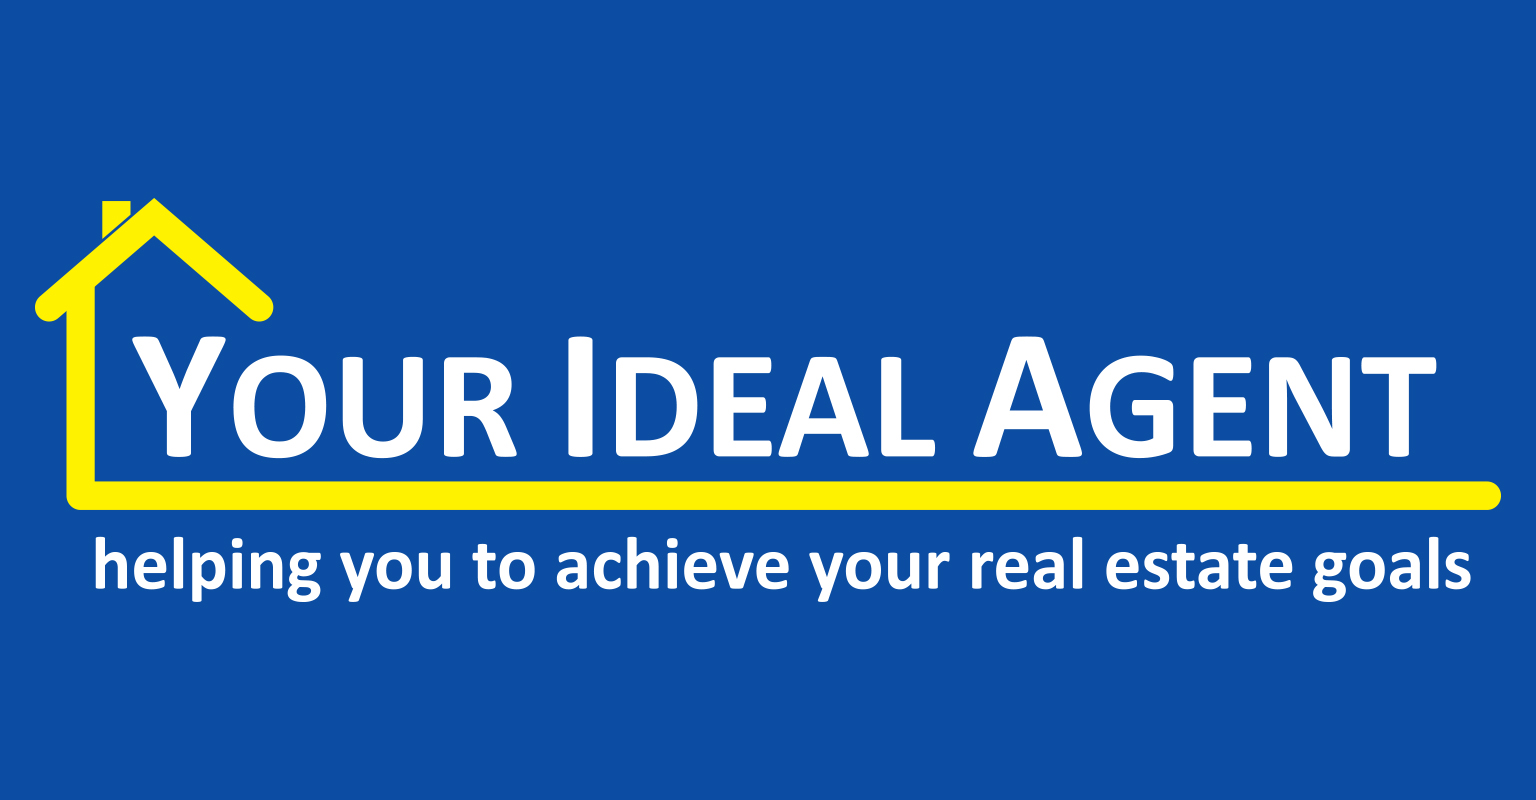 Your Ideal Agent: Real Estate Agent Mooloolaba